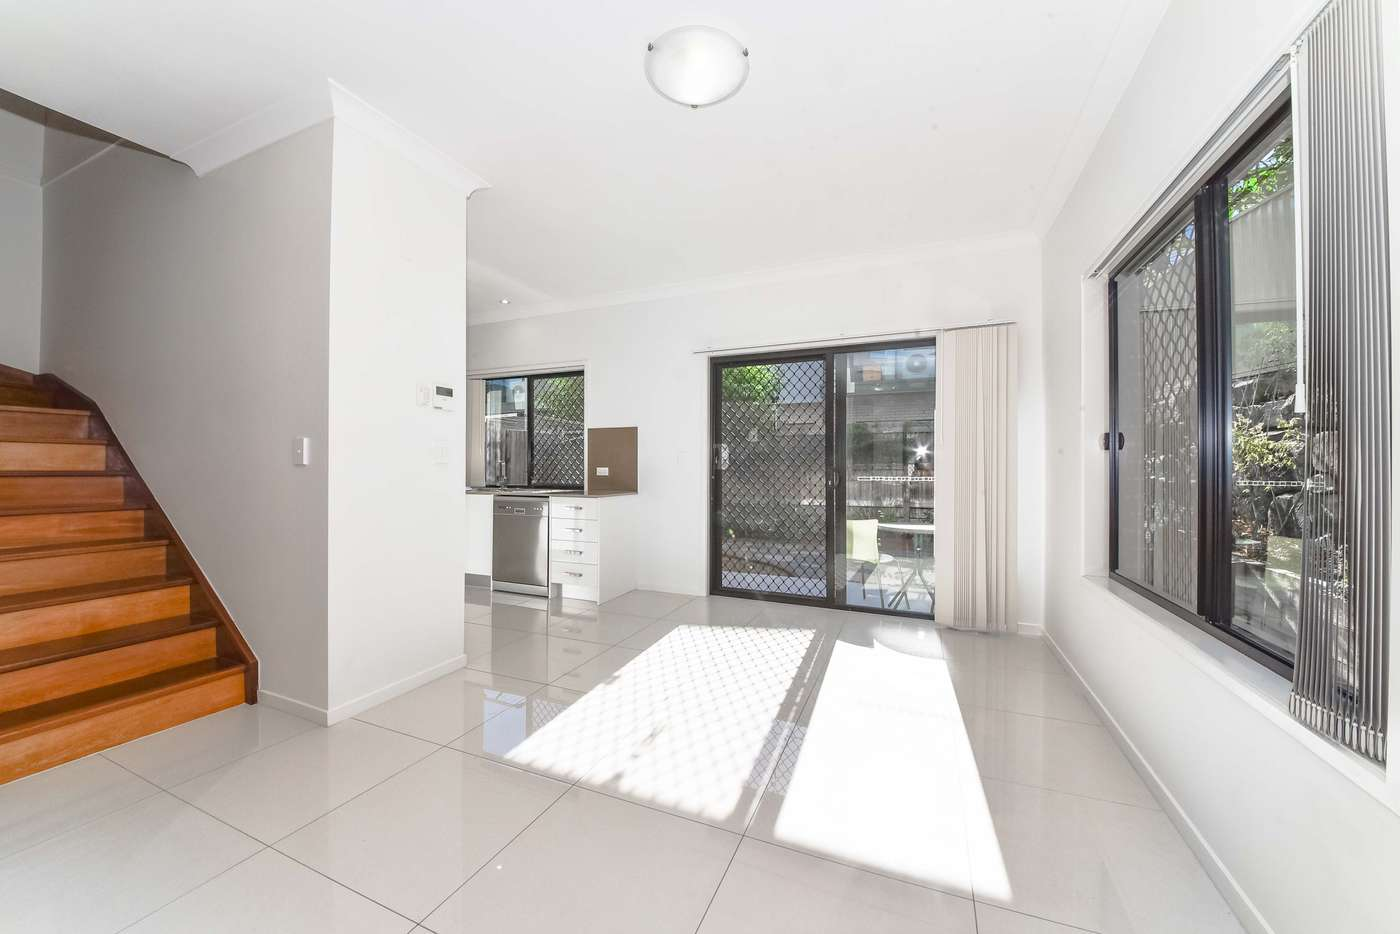 Sixth view of Homely townhouse listing, 41/407 Warrigal Rd, Eight Mile Plains QLD 4113